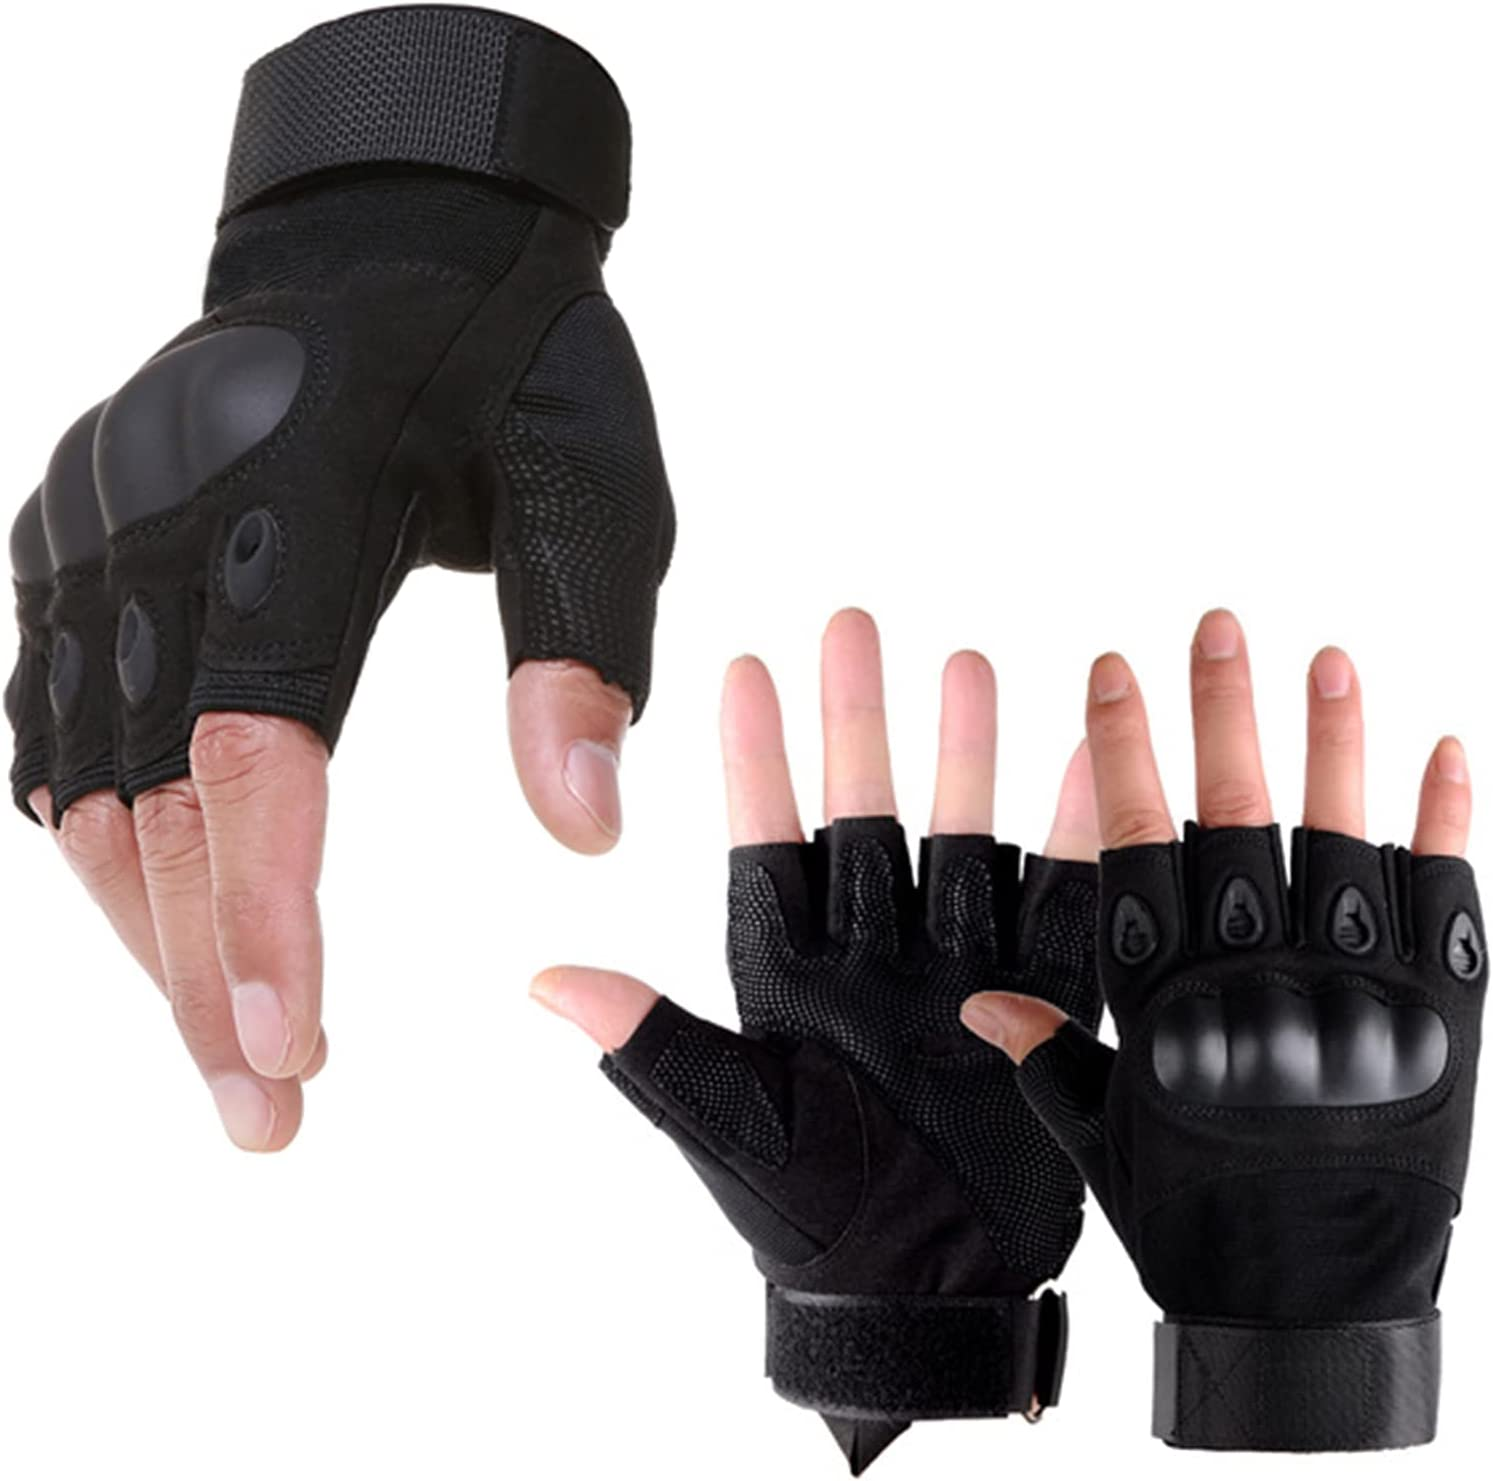 Exercise Gloves Riding Driving Tactical Air Factory Today's only outlet